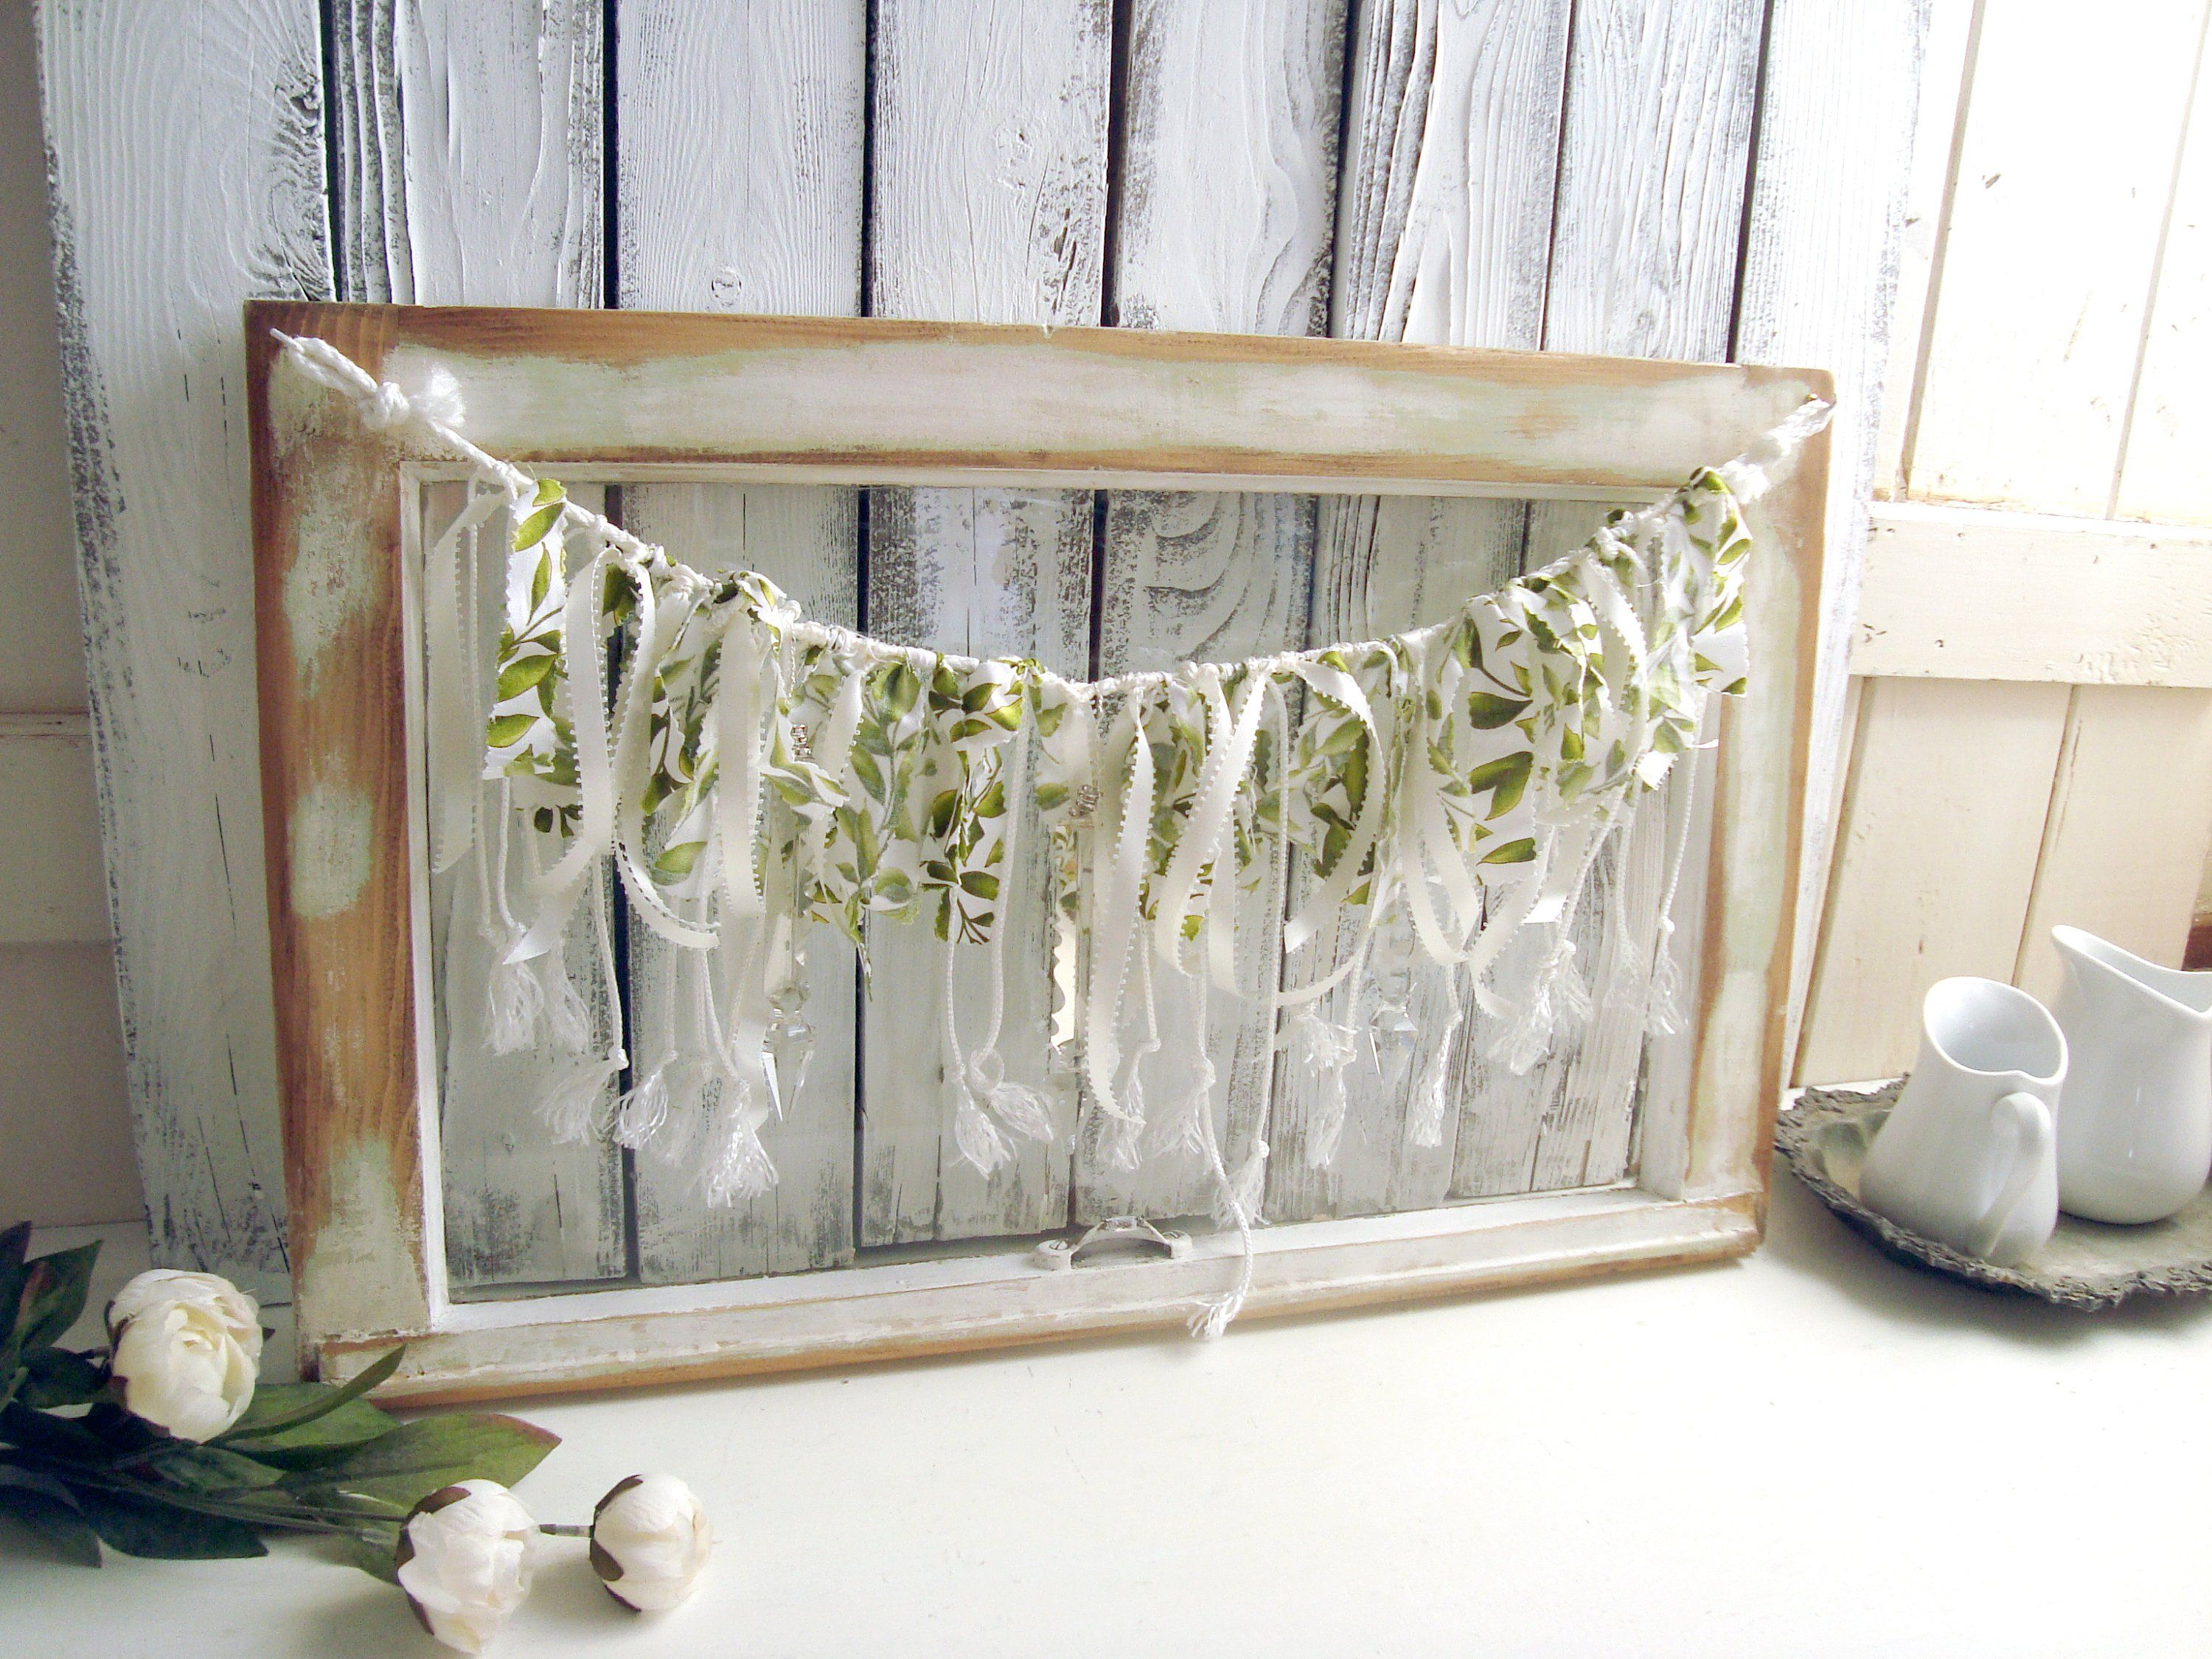 Window on wall decor  window with crystals garland holiday wall decor rustic farmhouse